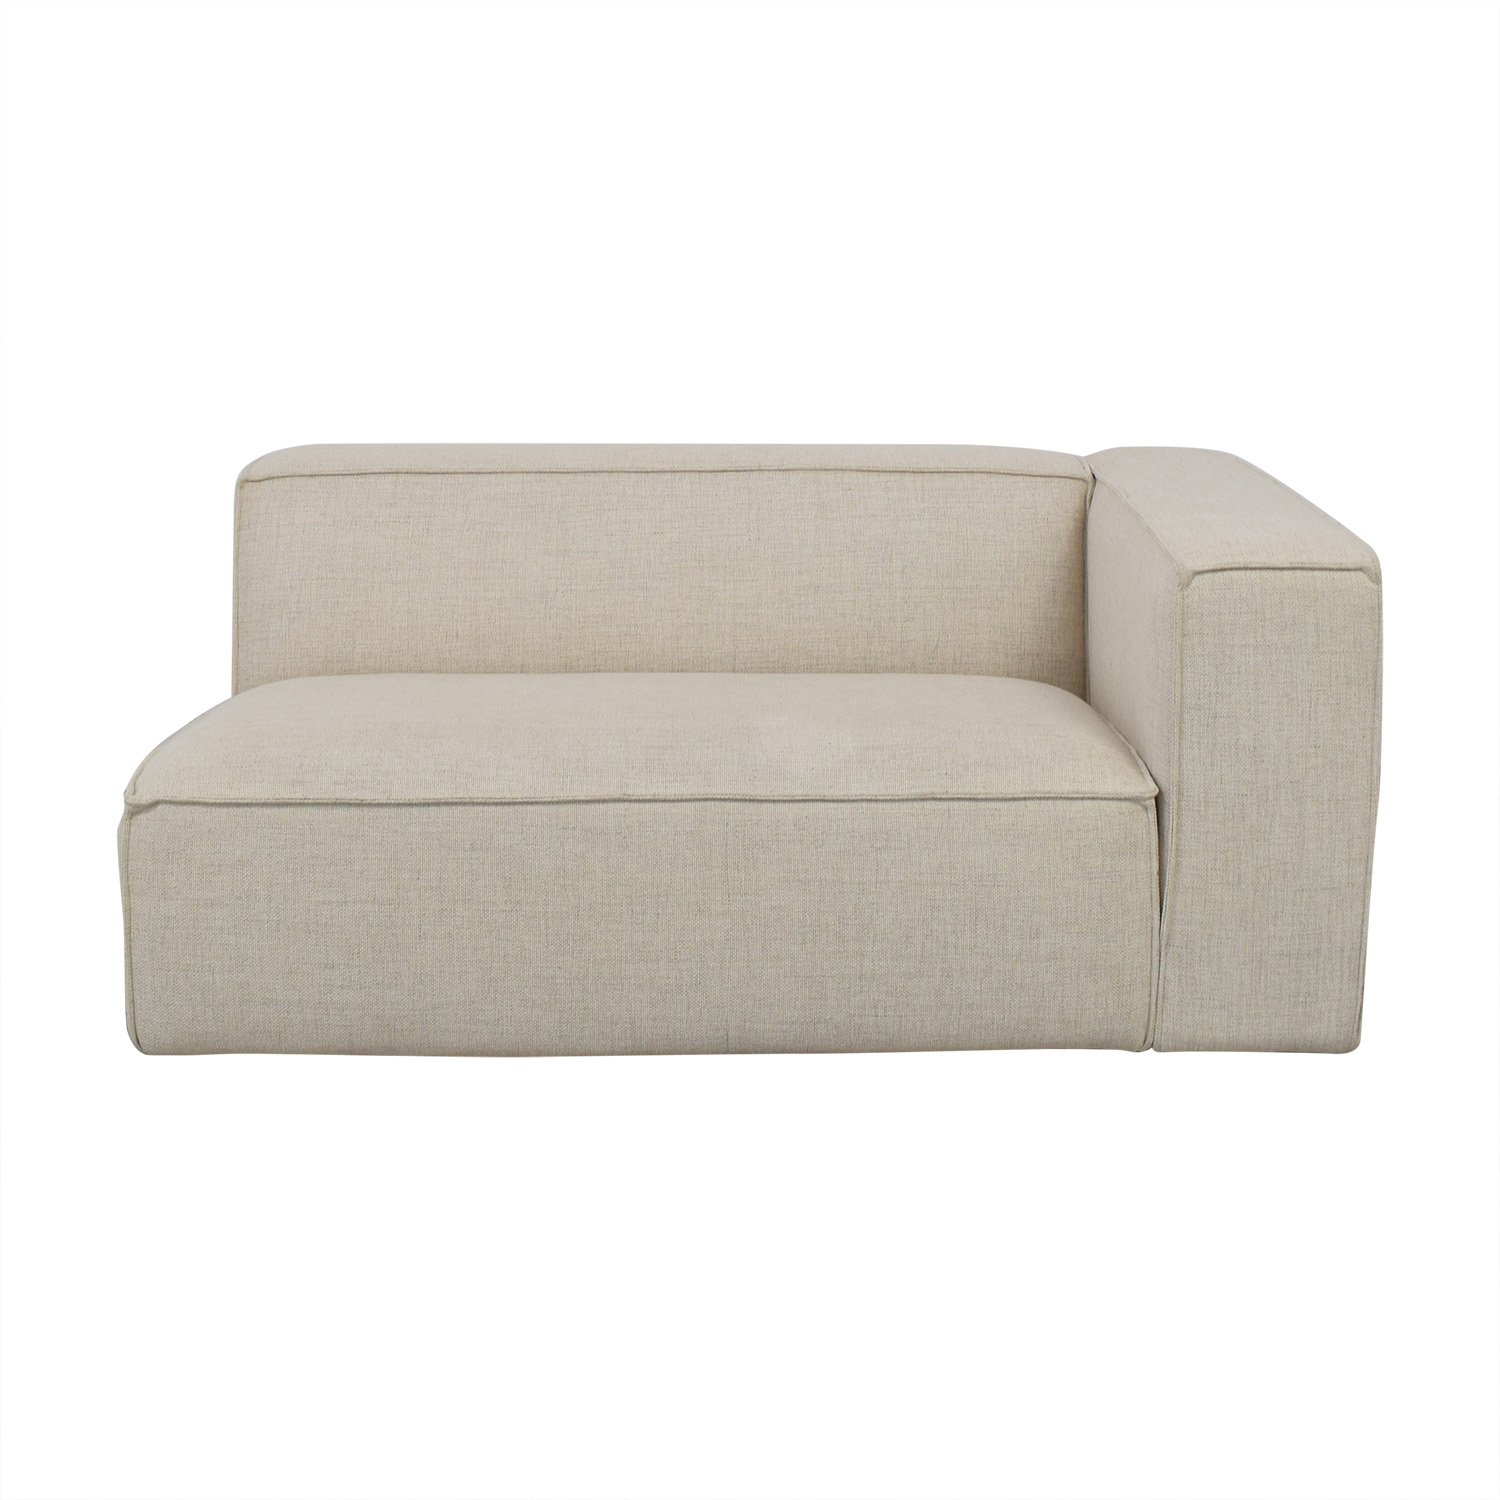 buy Interior Define Interior Define White One-Arm High Sofa online